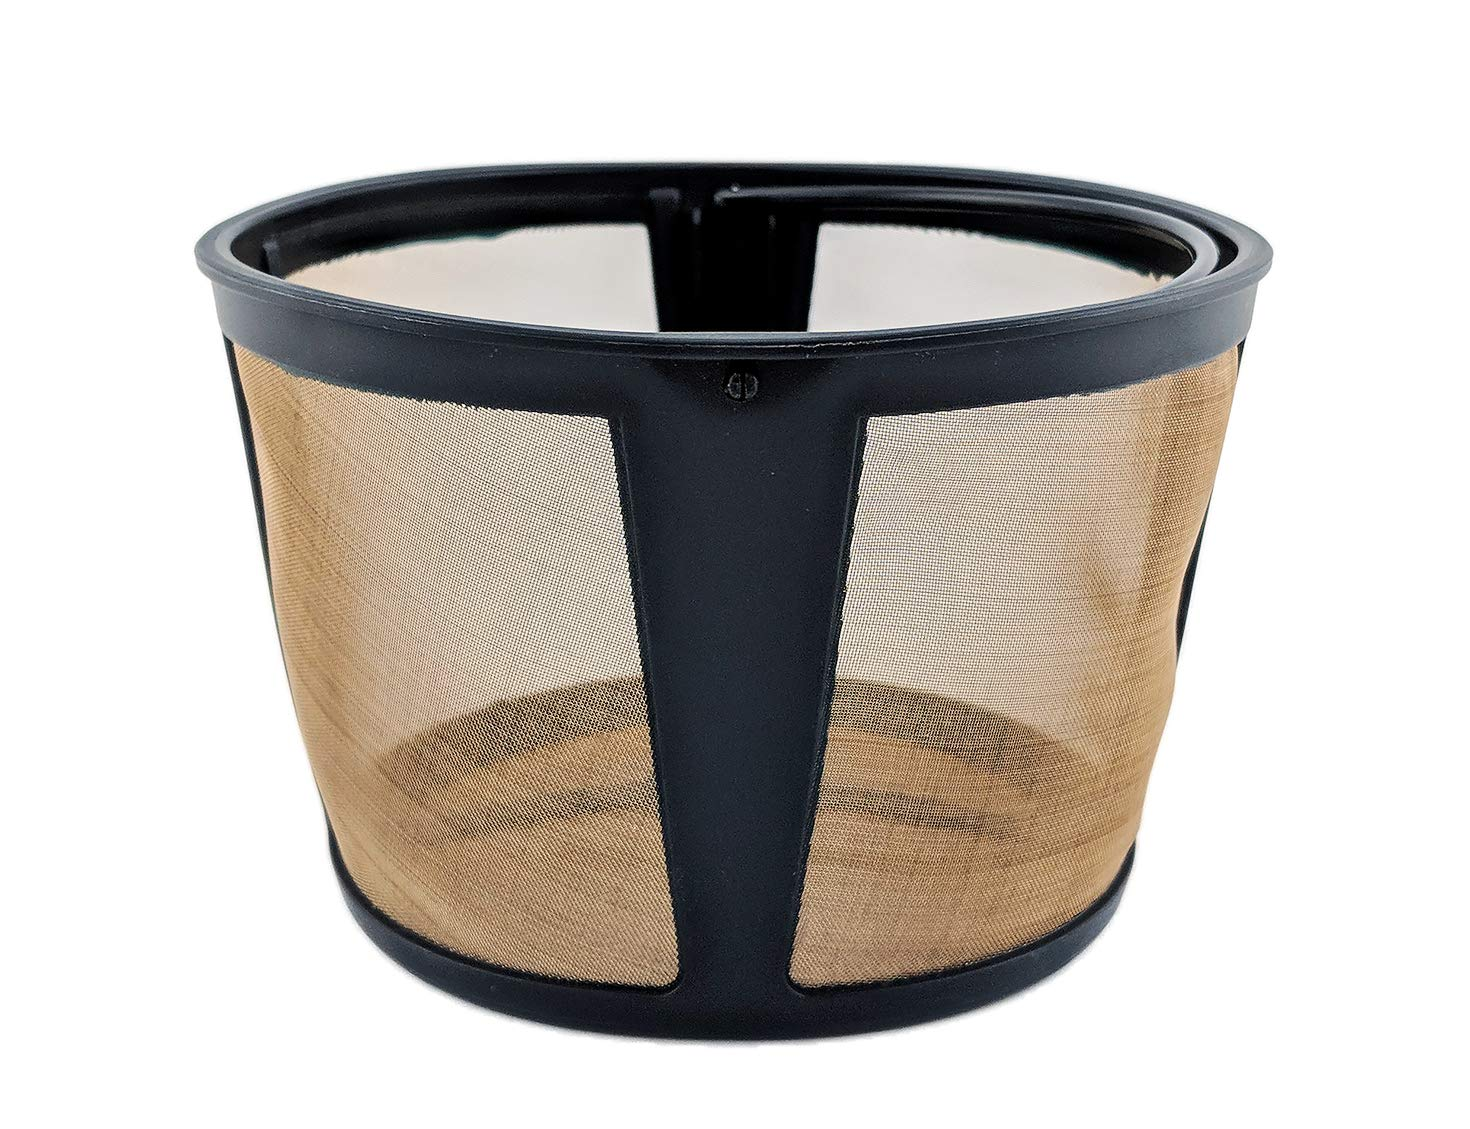 NRP Coffee Permenent Gold-tone Filter for KRUPS EC324 Coffeemaker - Real 14-cup Drip Coffee Filter Basket - also Fits More